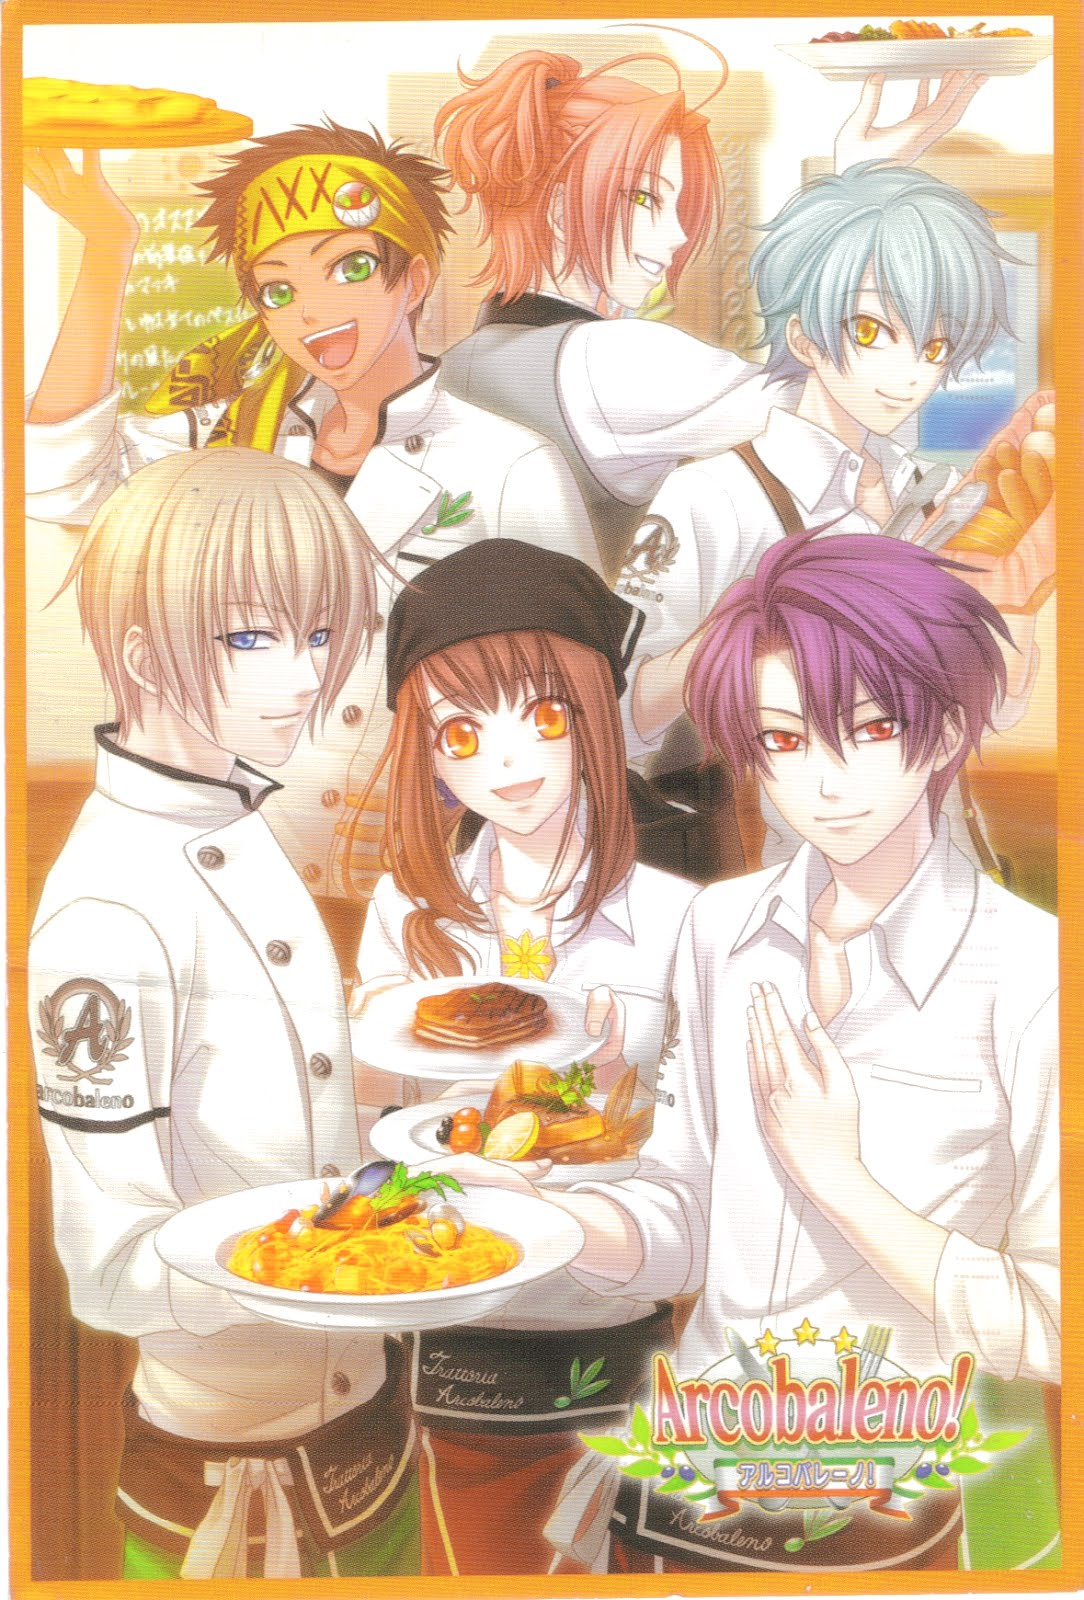 A cooking anime